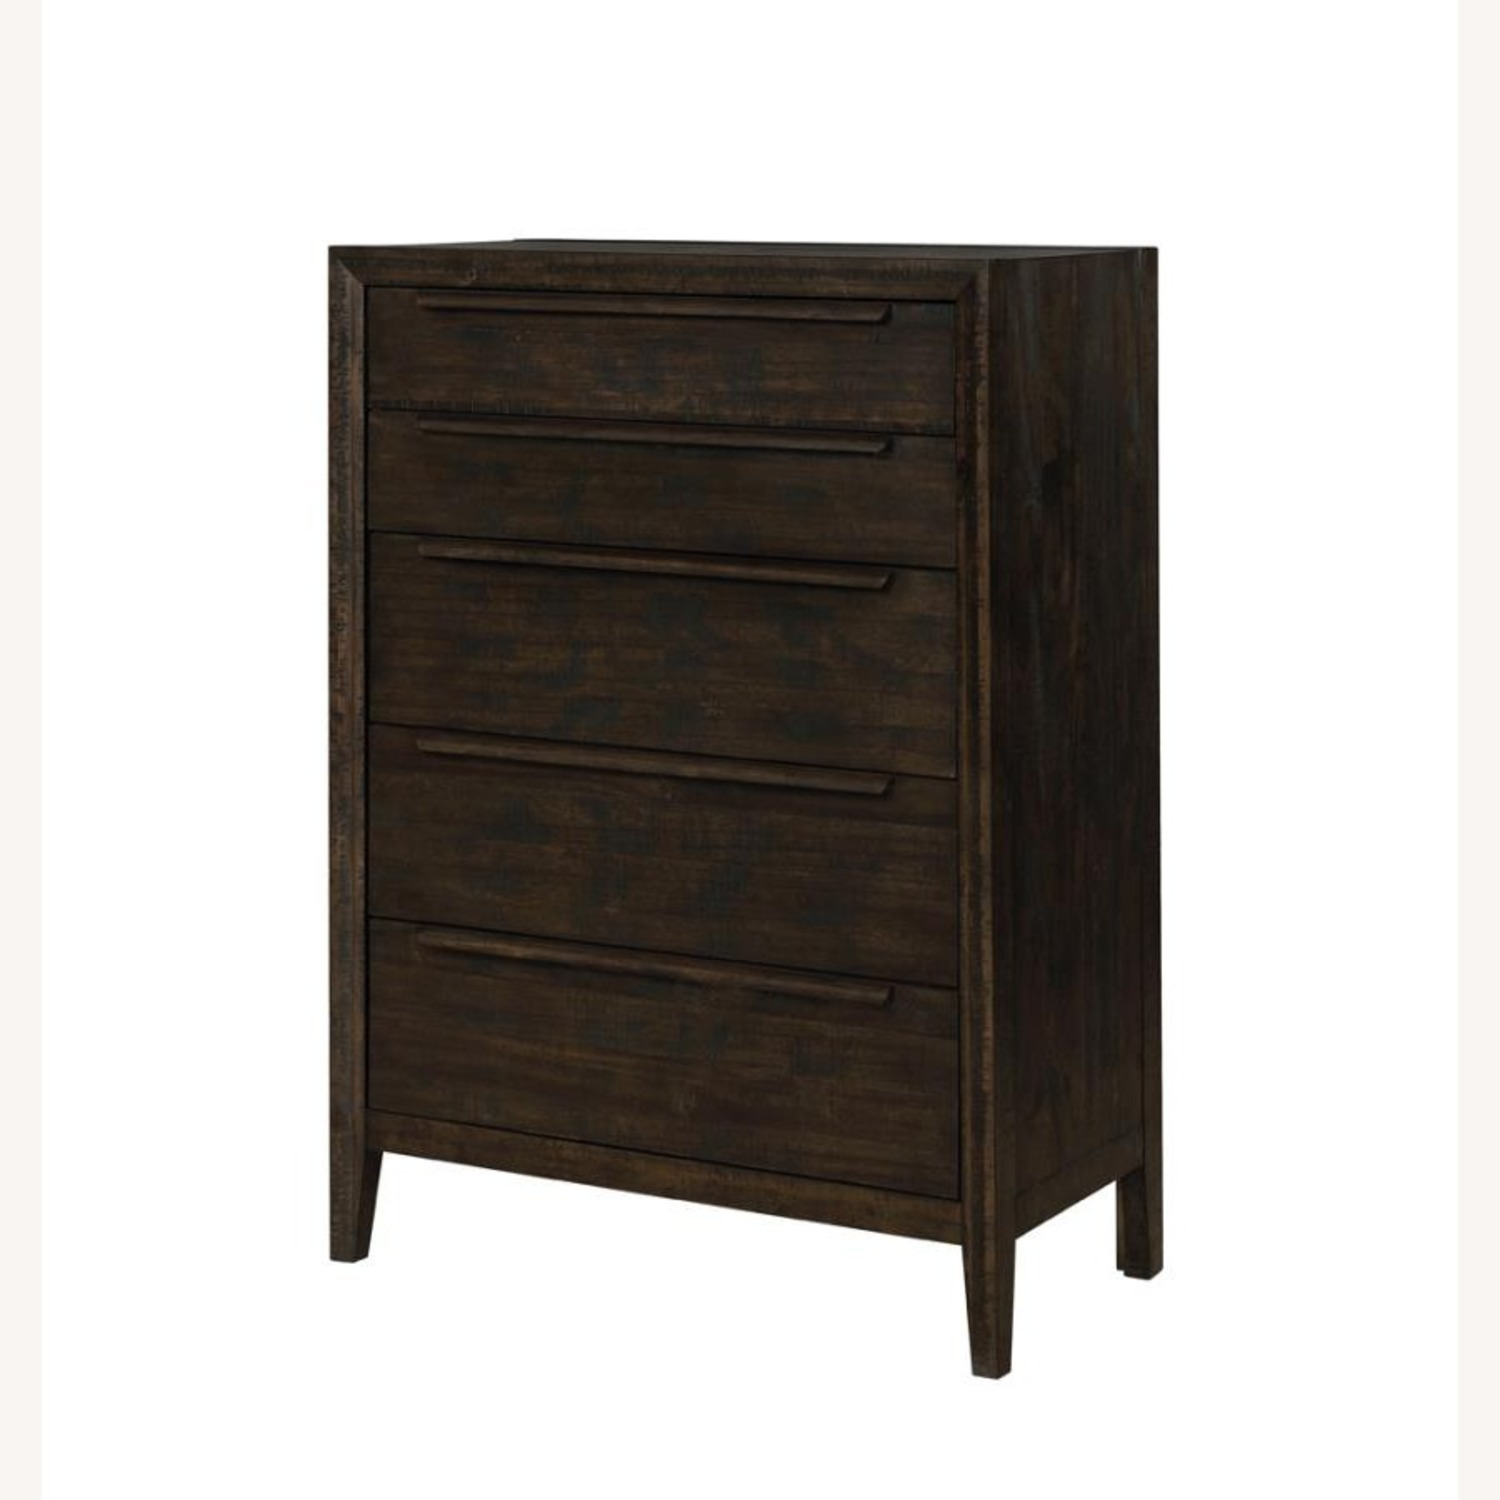 5-Drawer Chest In French Press Finish - image-1